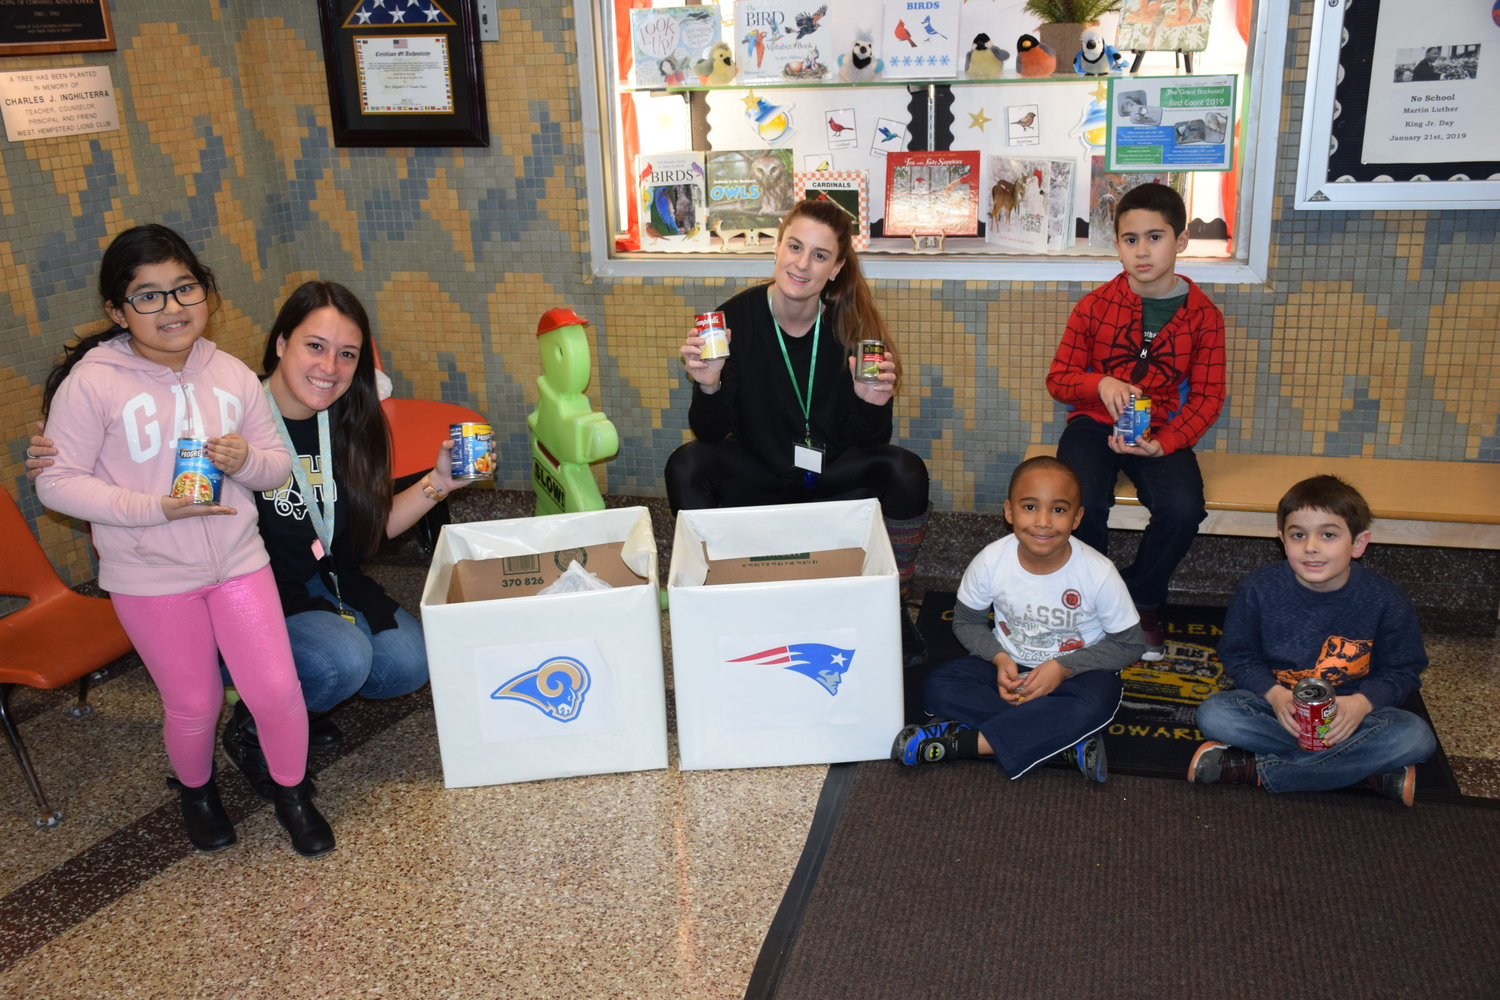 Students at Cornwell Avenue showed support for their favorite team in the Super Bowl by donating soup cans to make an impact in the community.